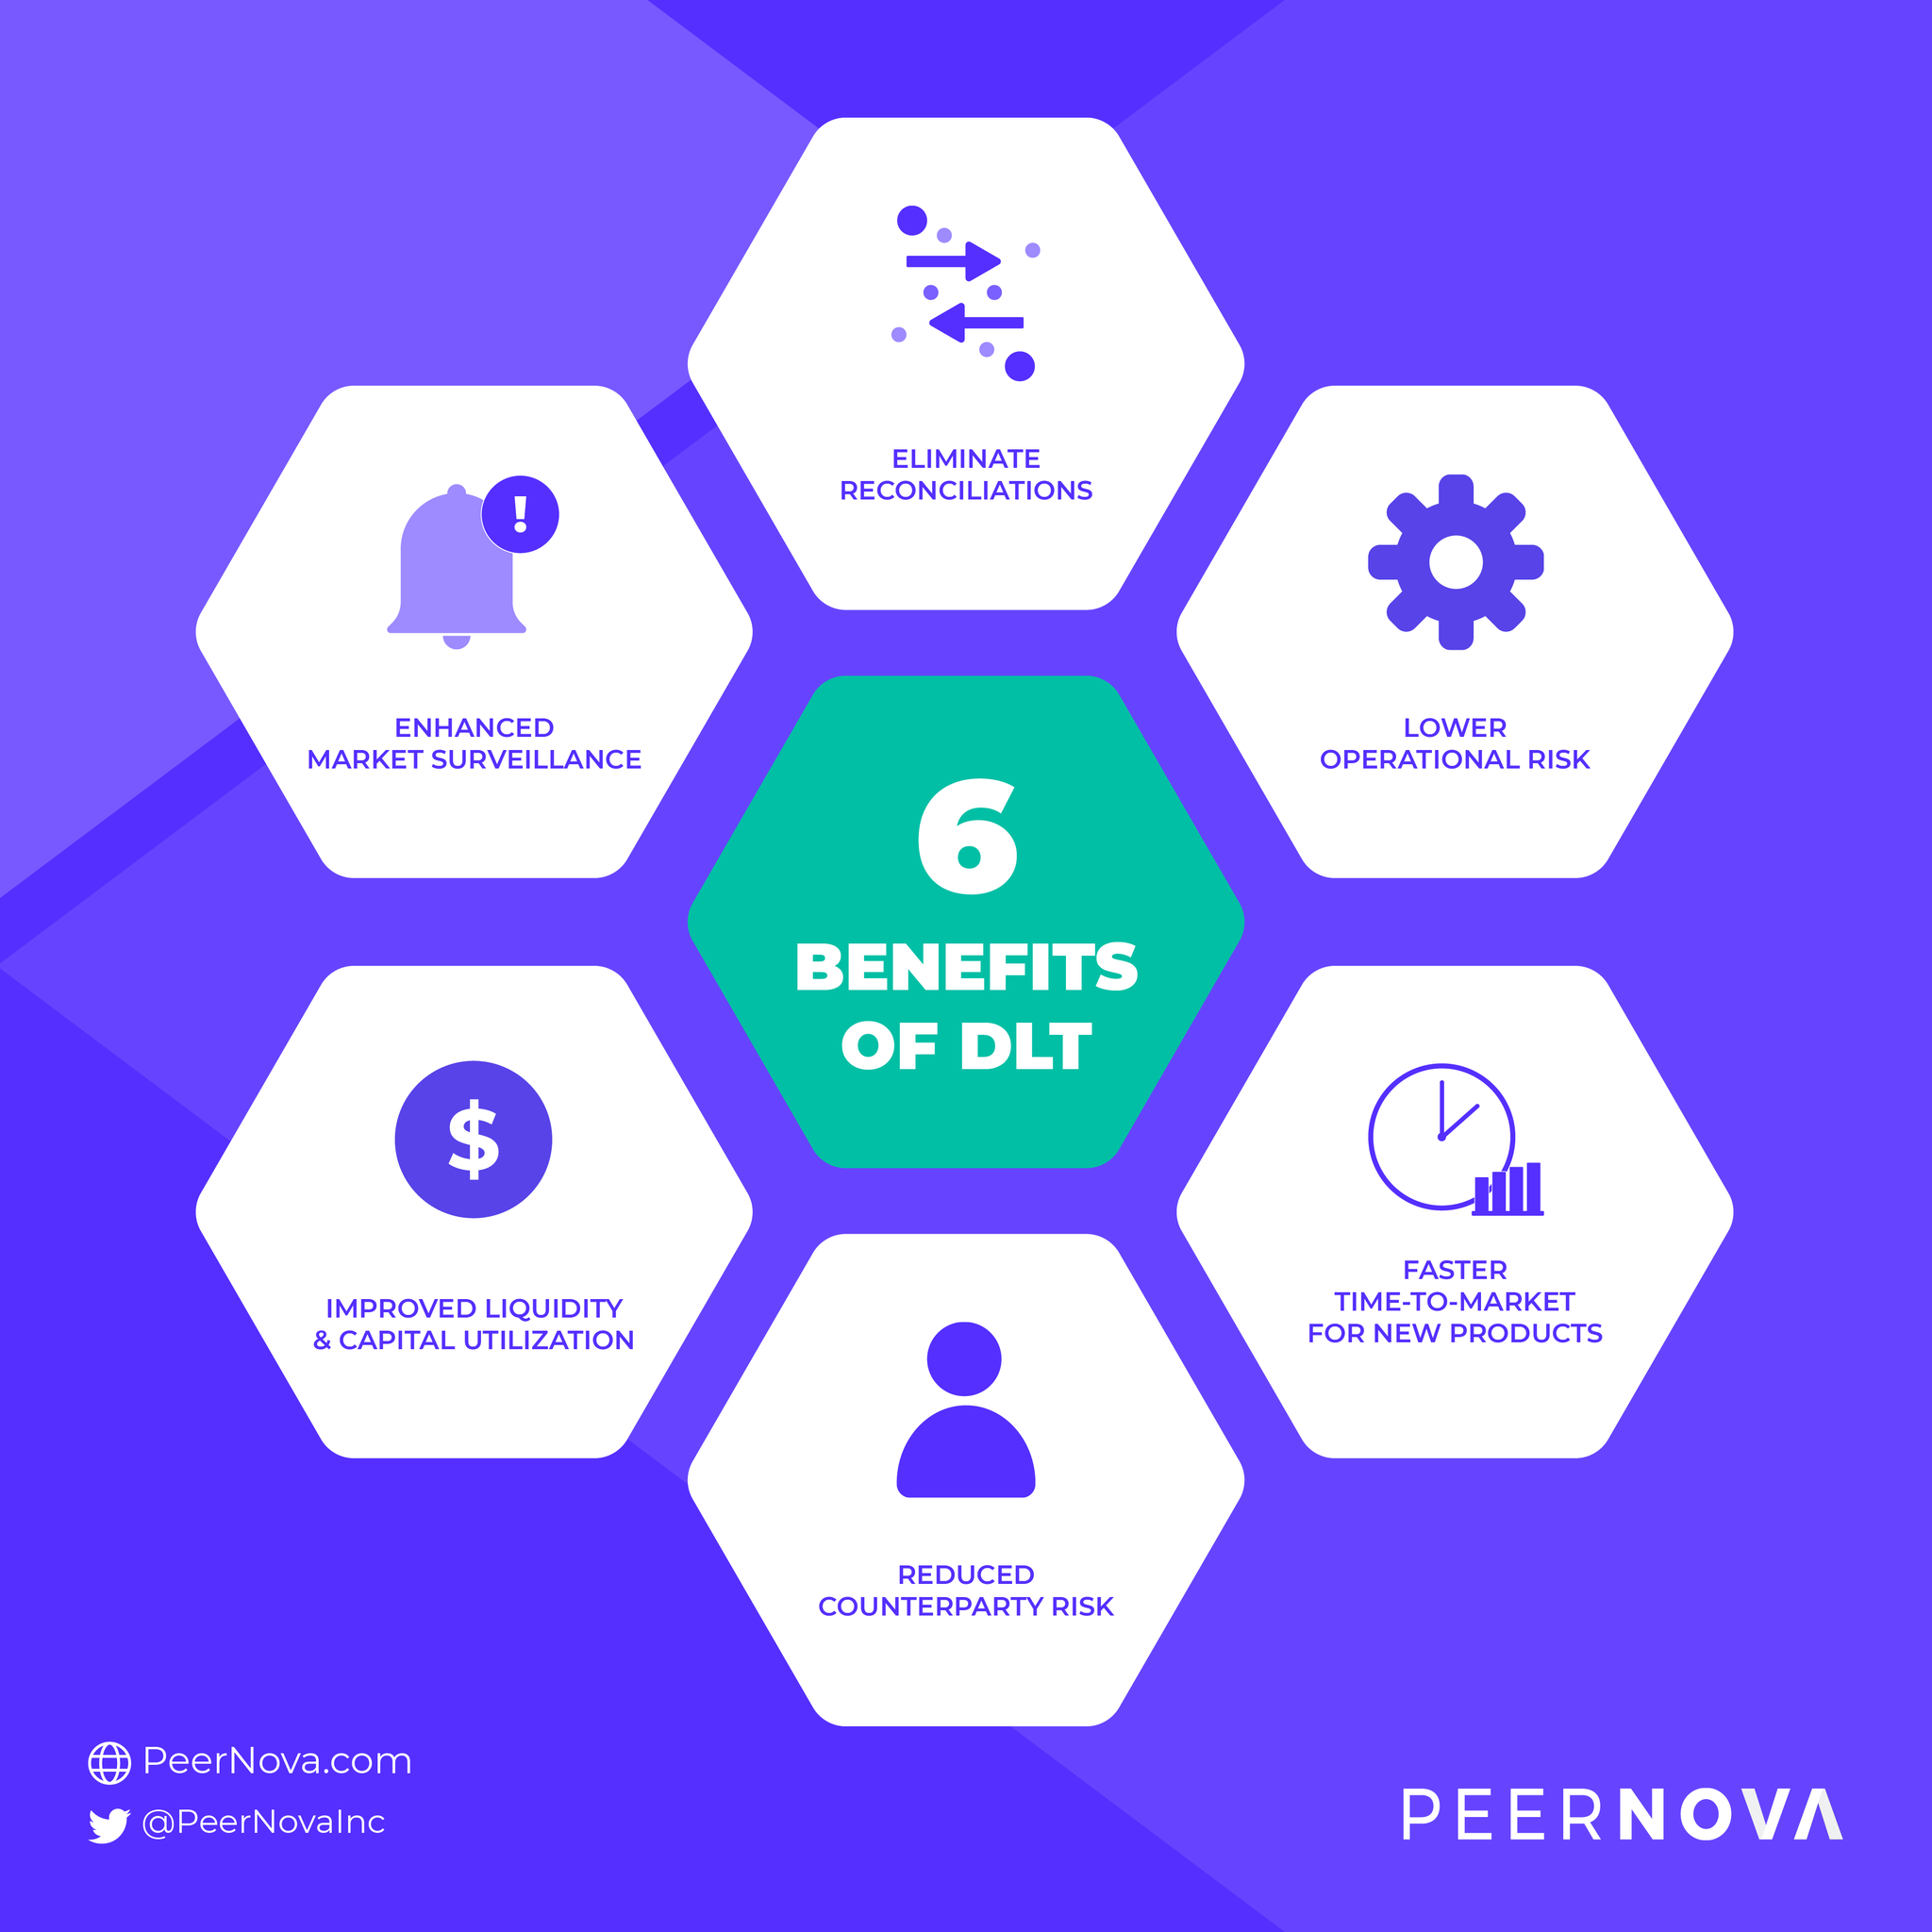 What are the benefits of a Distributed Ledger Technology (DLT)? 6 Benefits of Distributed Ledger Technology (DLT) #peernova #dlt #blockchain #fintech #technology #financialservices #siliconvalley #infographic